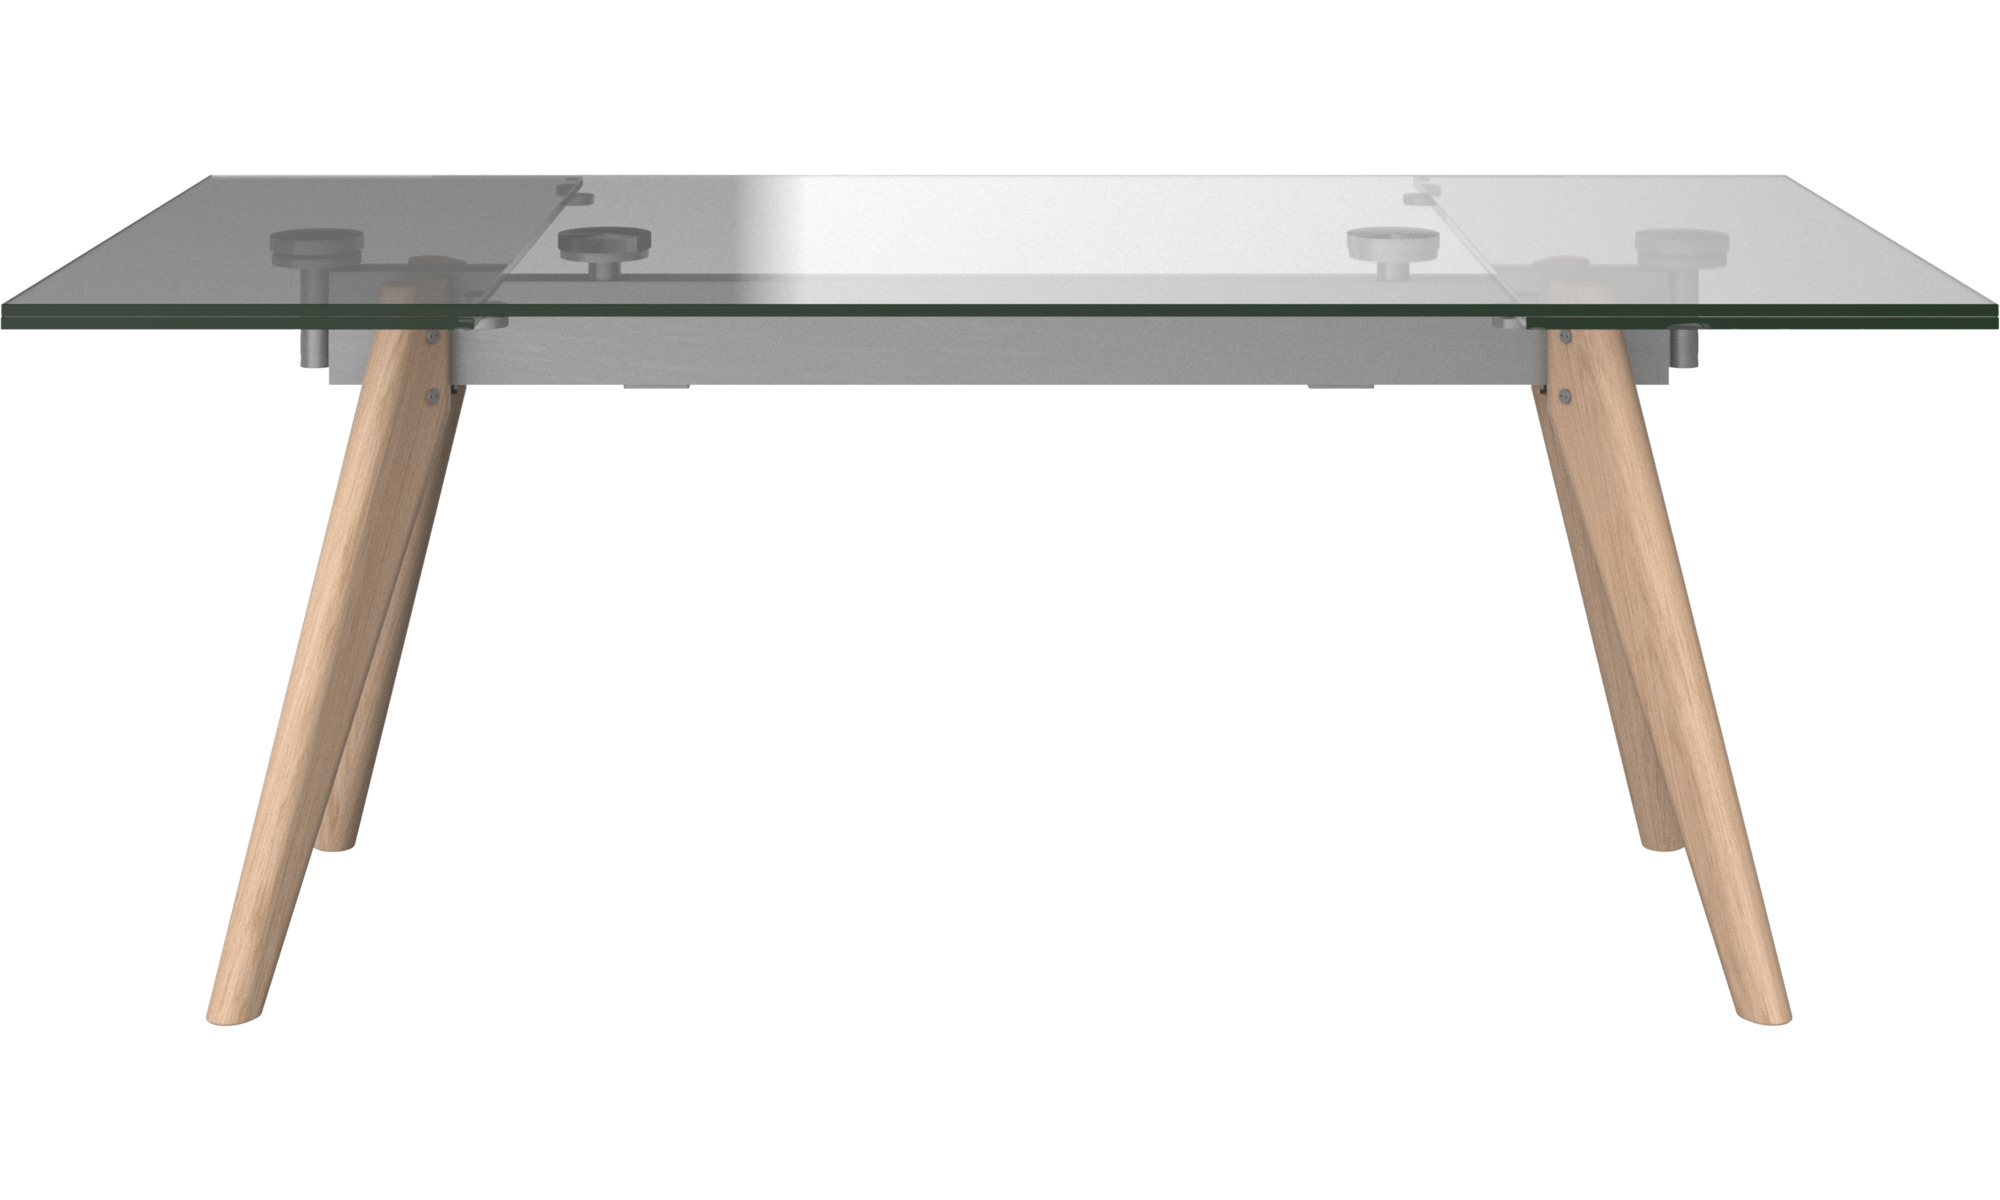 Dining tables Monza table with supplementary tabletops  : 367705 from www.boconcept.com size 2000 x 1200 jpeg 58kB